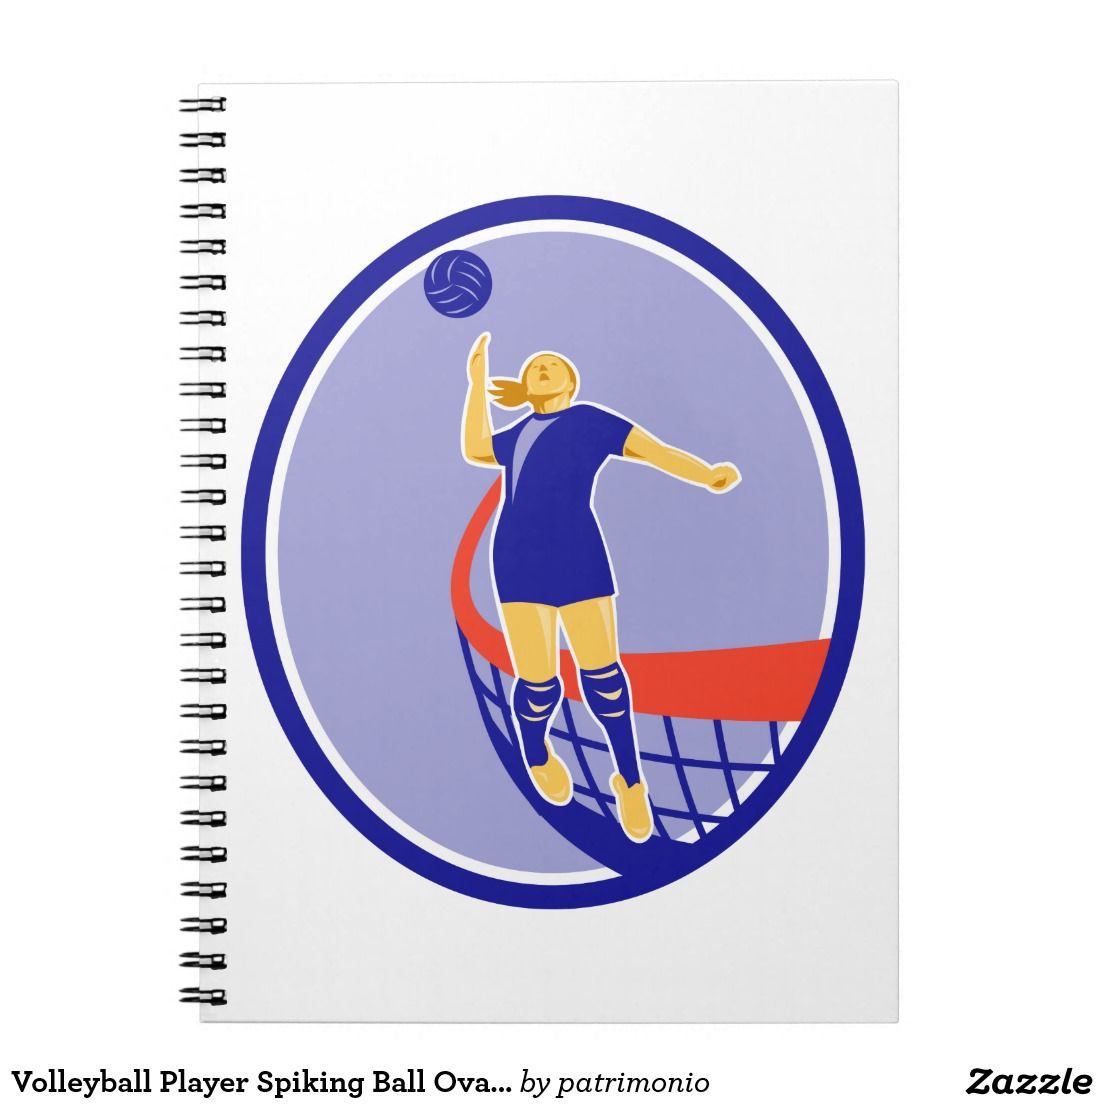 Volleyball Player Spiking Ball Oval Retro Notebook Illustration Of A Volleyball Player Spiker Jumping Spikin Volleyball Players Volleyball Notebook Volleyball